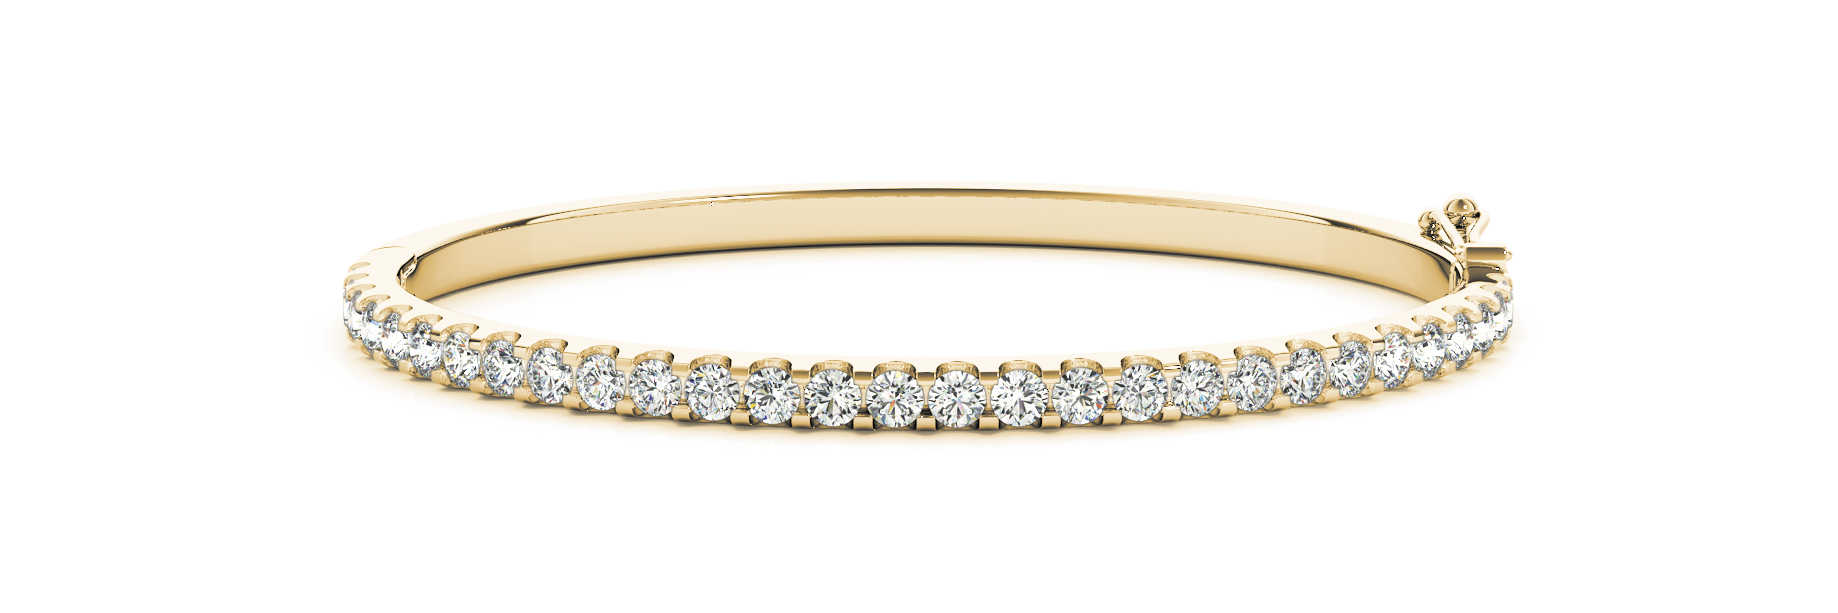 3.36 Carat Round Diamond Bangle in Yellow Gold